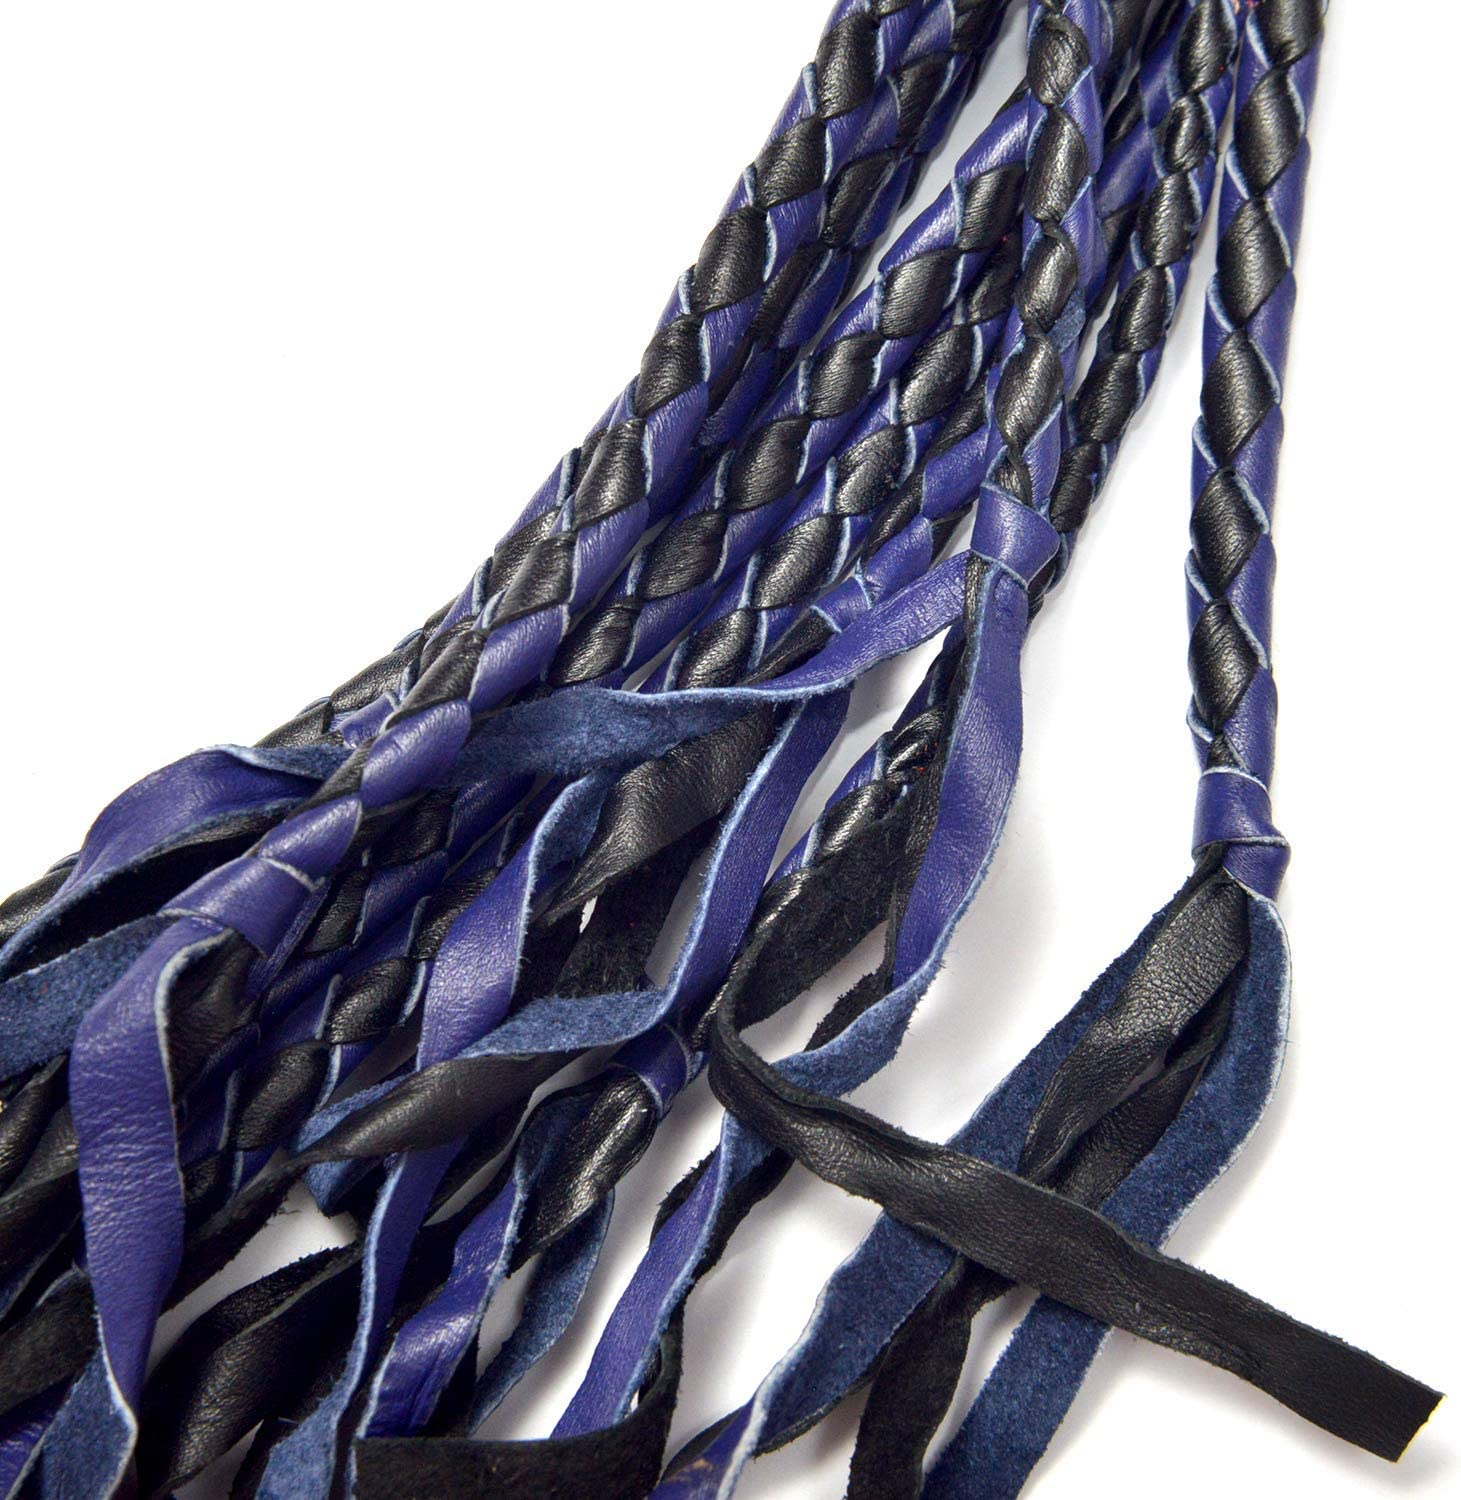 Horse /& Bull Sturdy Training Whip Handmade Genuine Leather Whip BARE SUTRA Flogger Heavy Duty Cow Hide Leather Plait Weave Handle with Wrist Wrap Animals Cattle Flogger